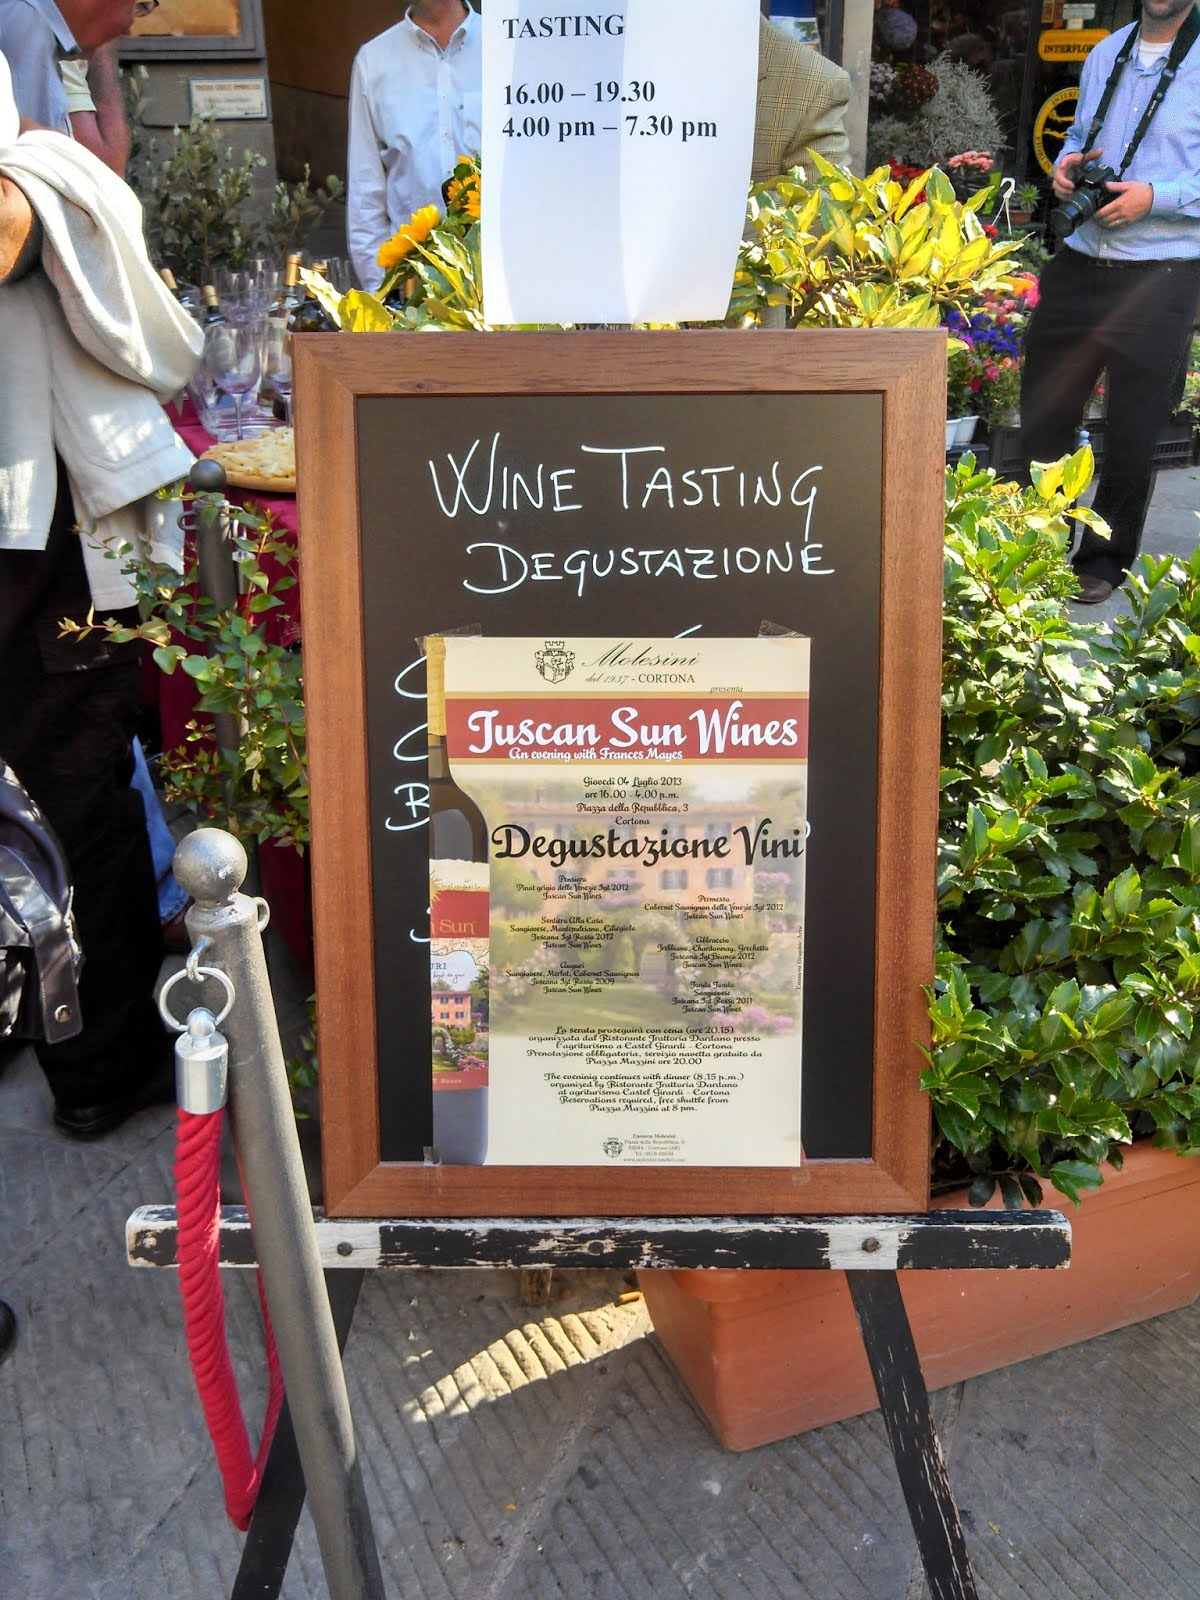 TuscanSunWines Launch July 4th 2013 Cortona Italy | Cortona, Italy shot with an Android Razr HD by Katie Shea Design #VZWBuzz